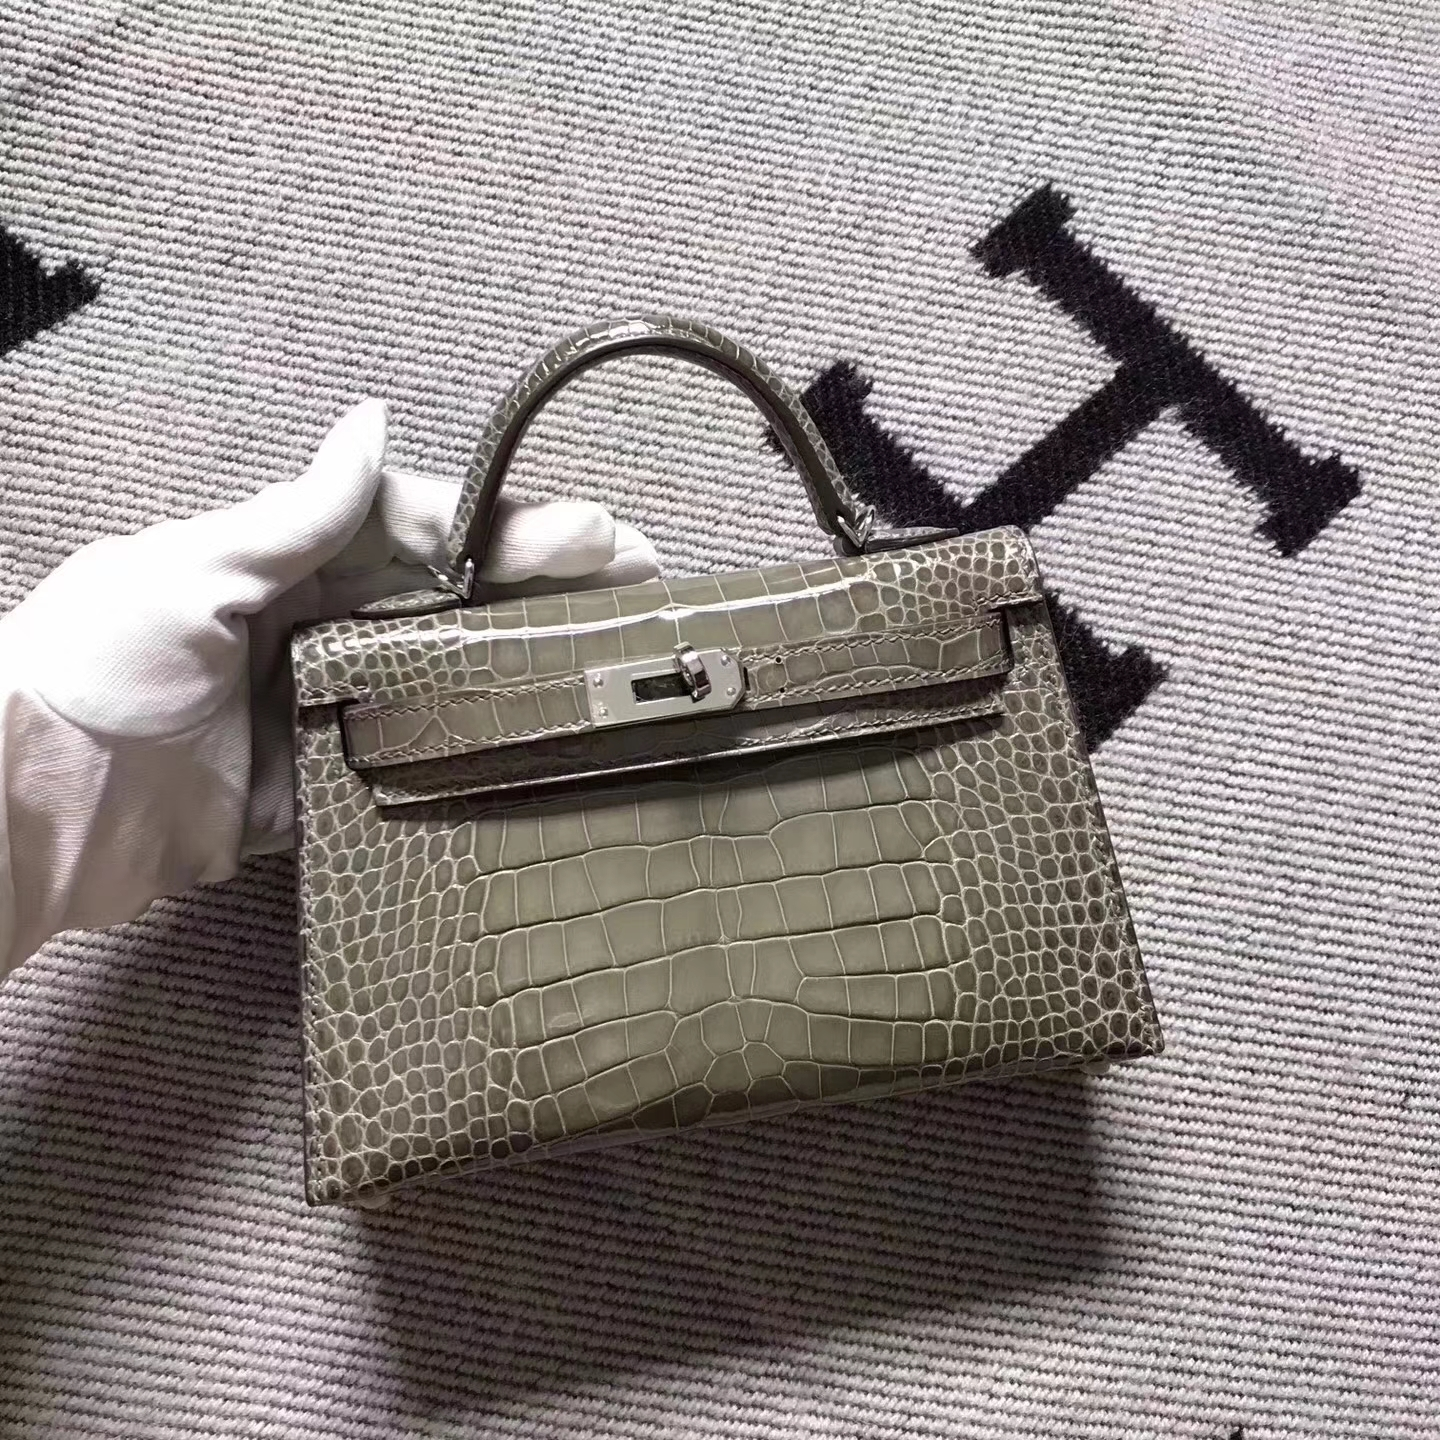 Discount Hermes Etoupe Grey Crocodile Shiny Minikelly-2 Clutch Bag